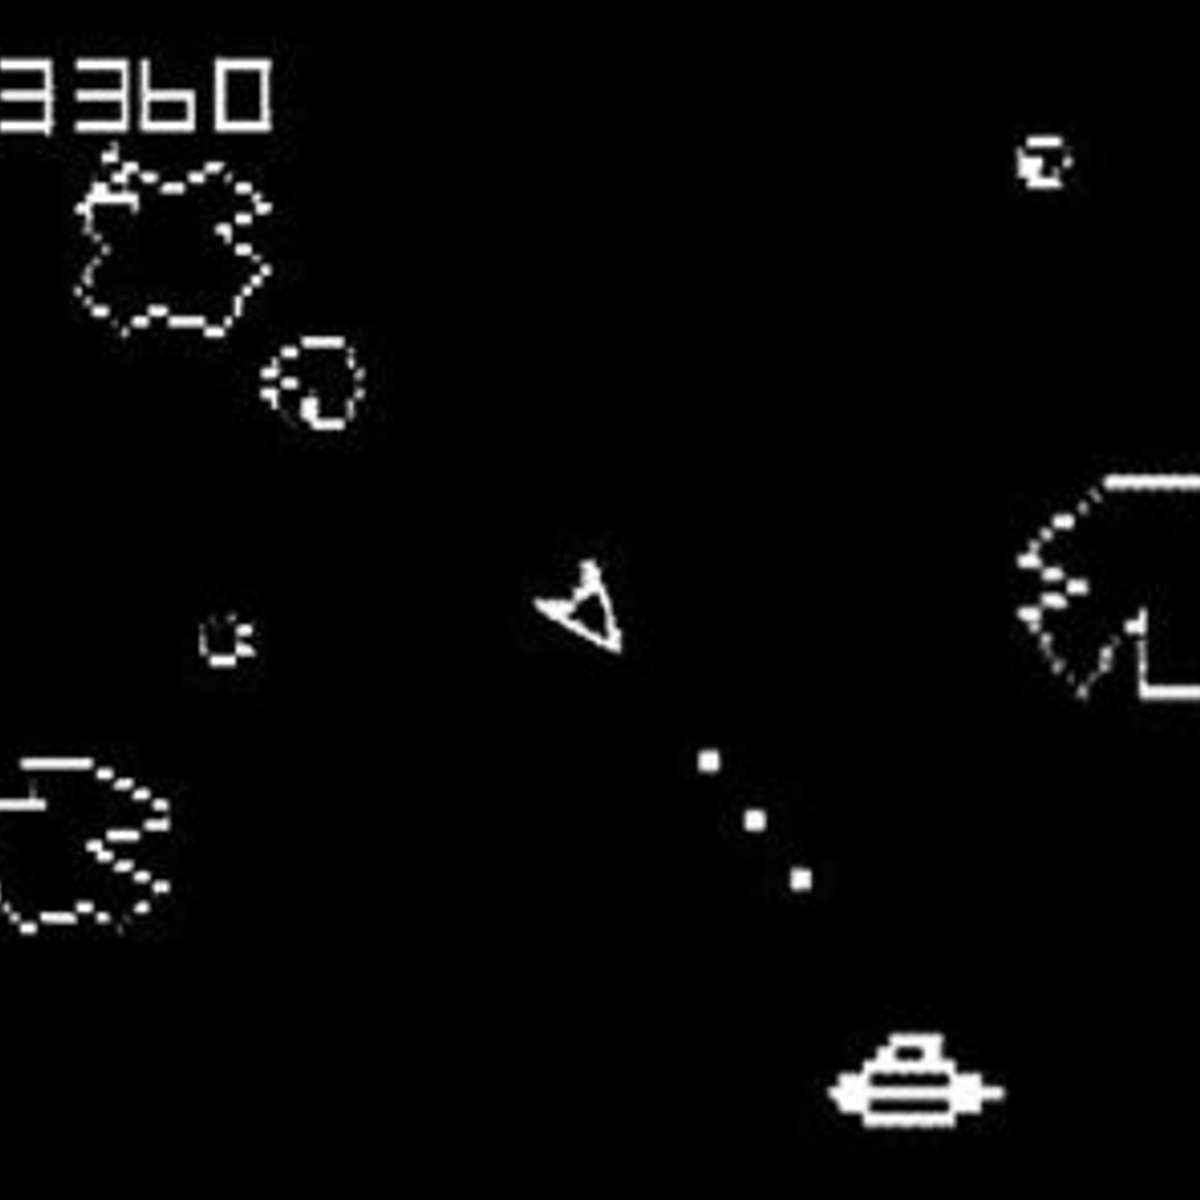 asteroids_game_0.jpeg